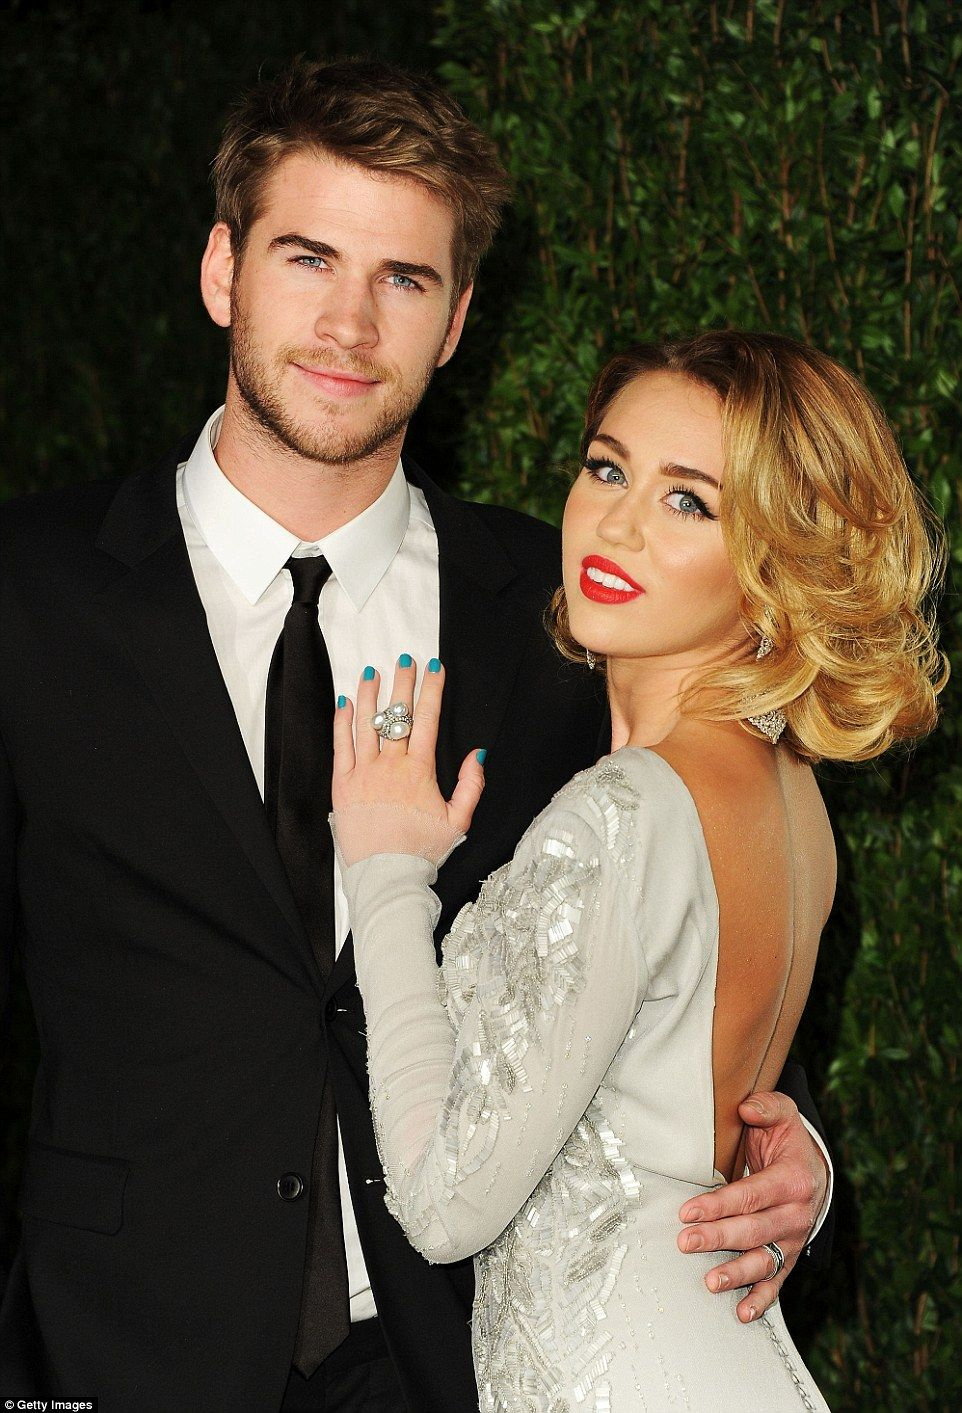 Liam hemsworth and miley cyrus dating since